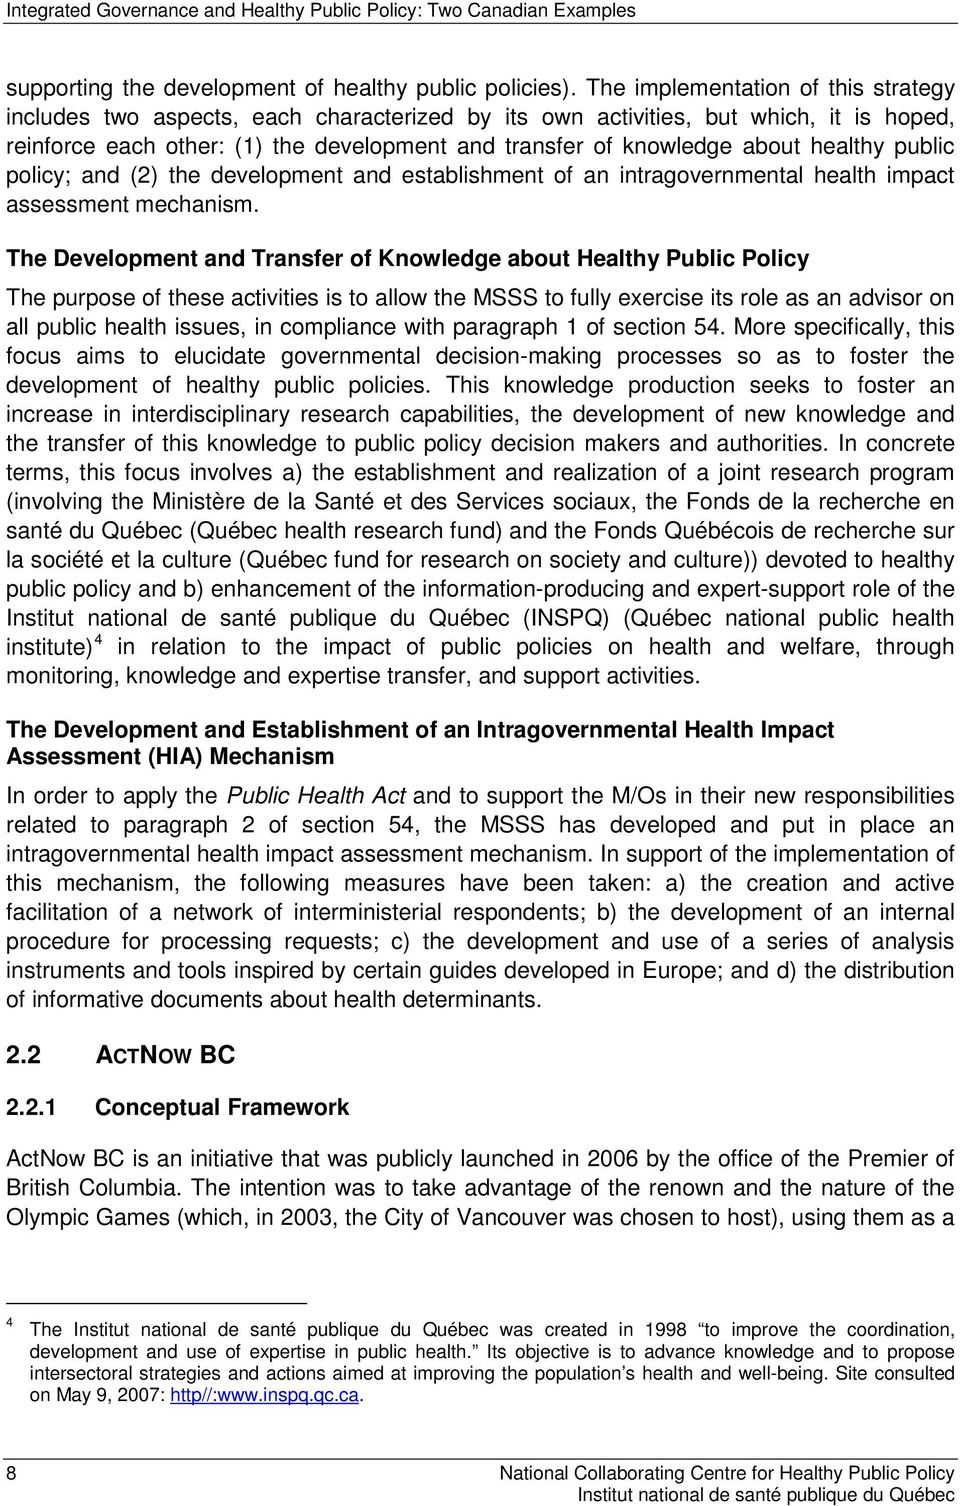 healthy public policy; and (2) the development and establishment of an intragovernmental health impact assessment mechanism.